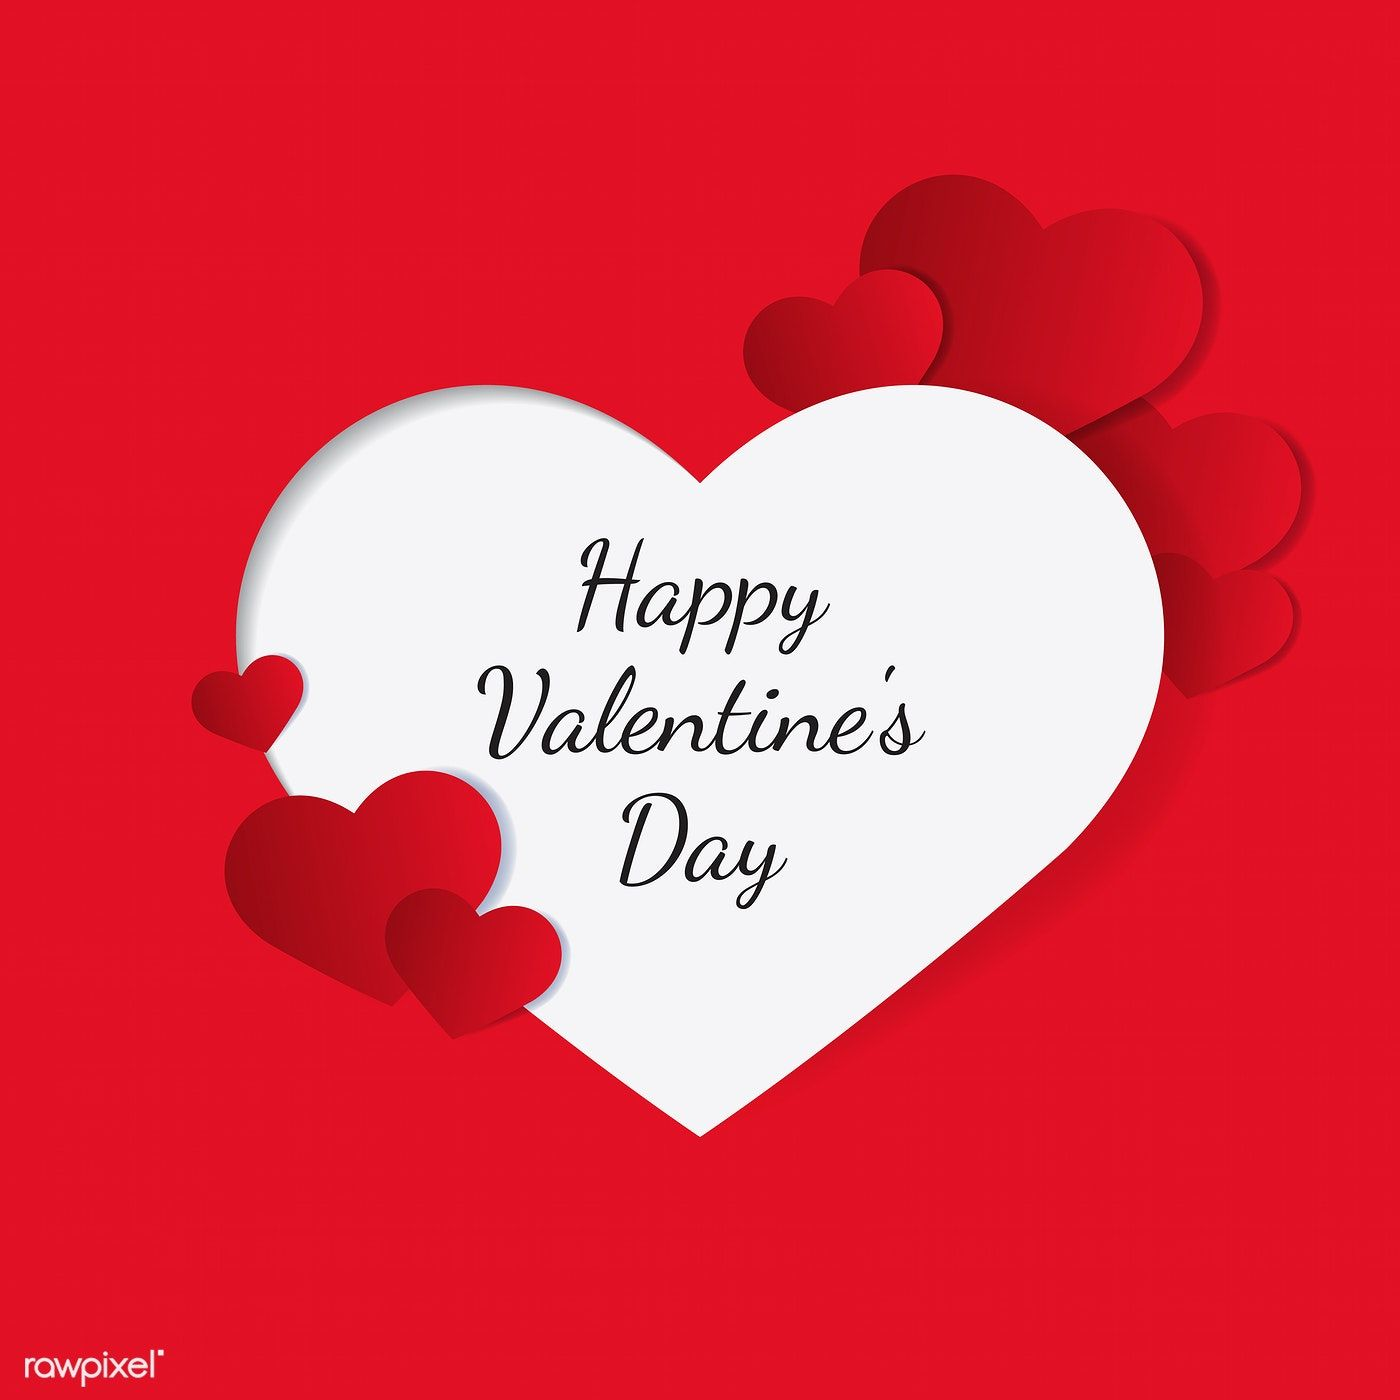 Valentine's day vector design concept free image by